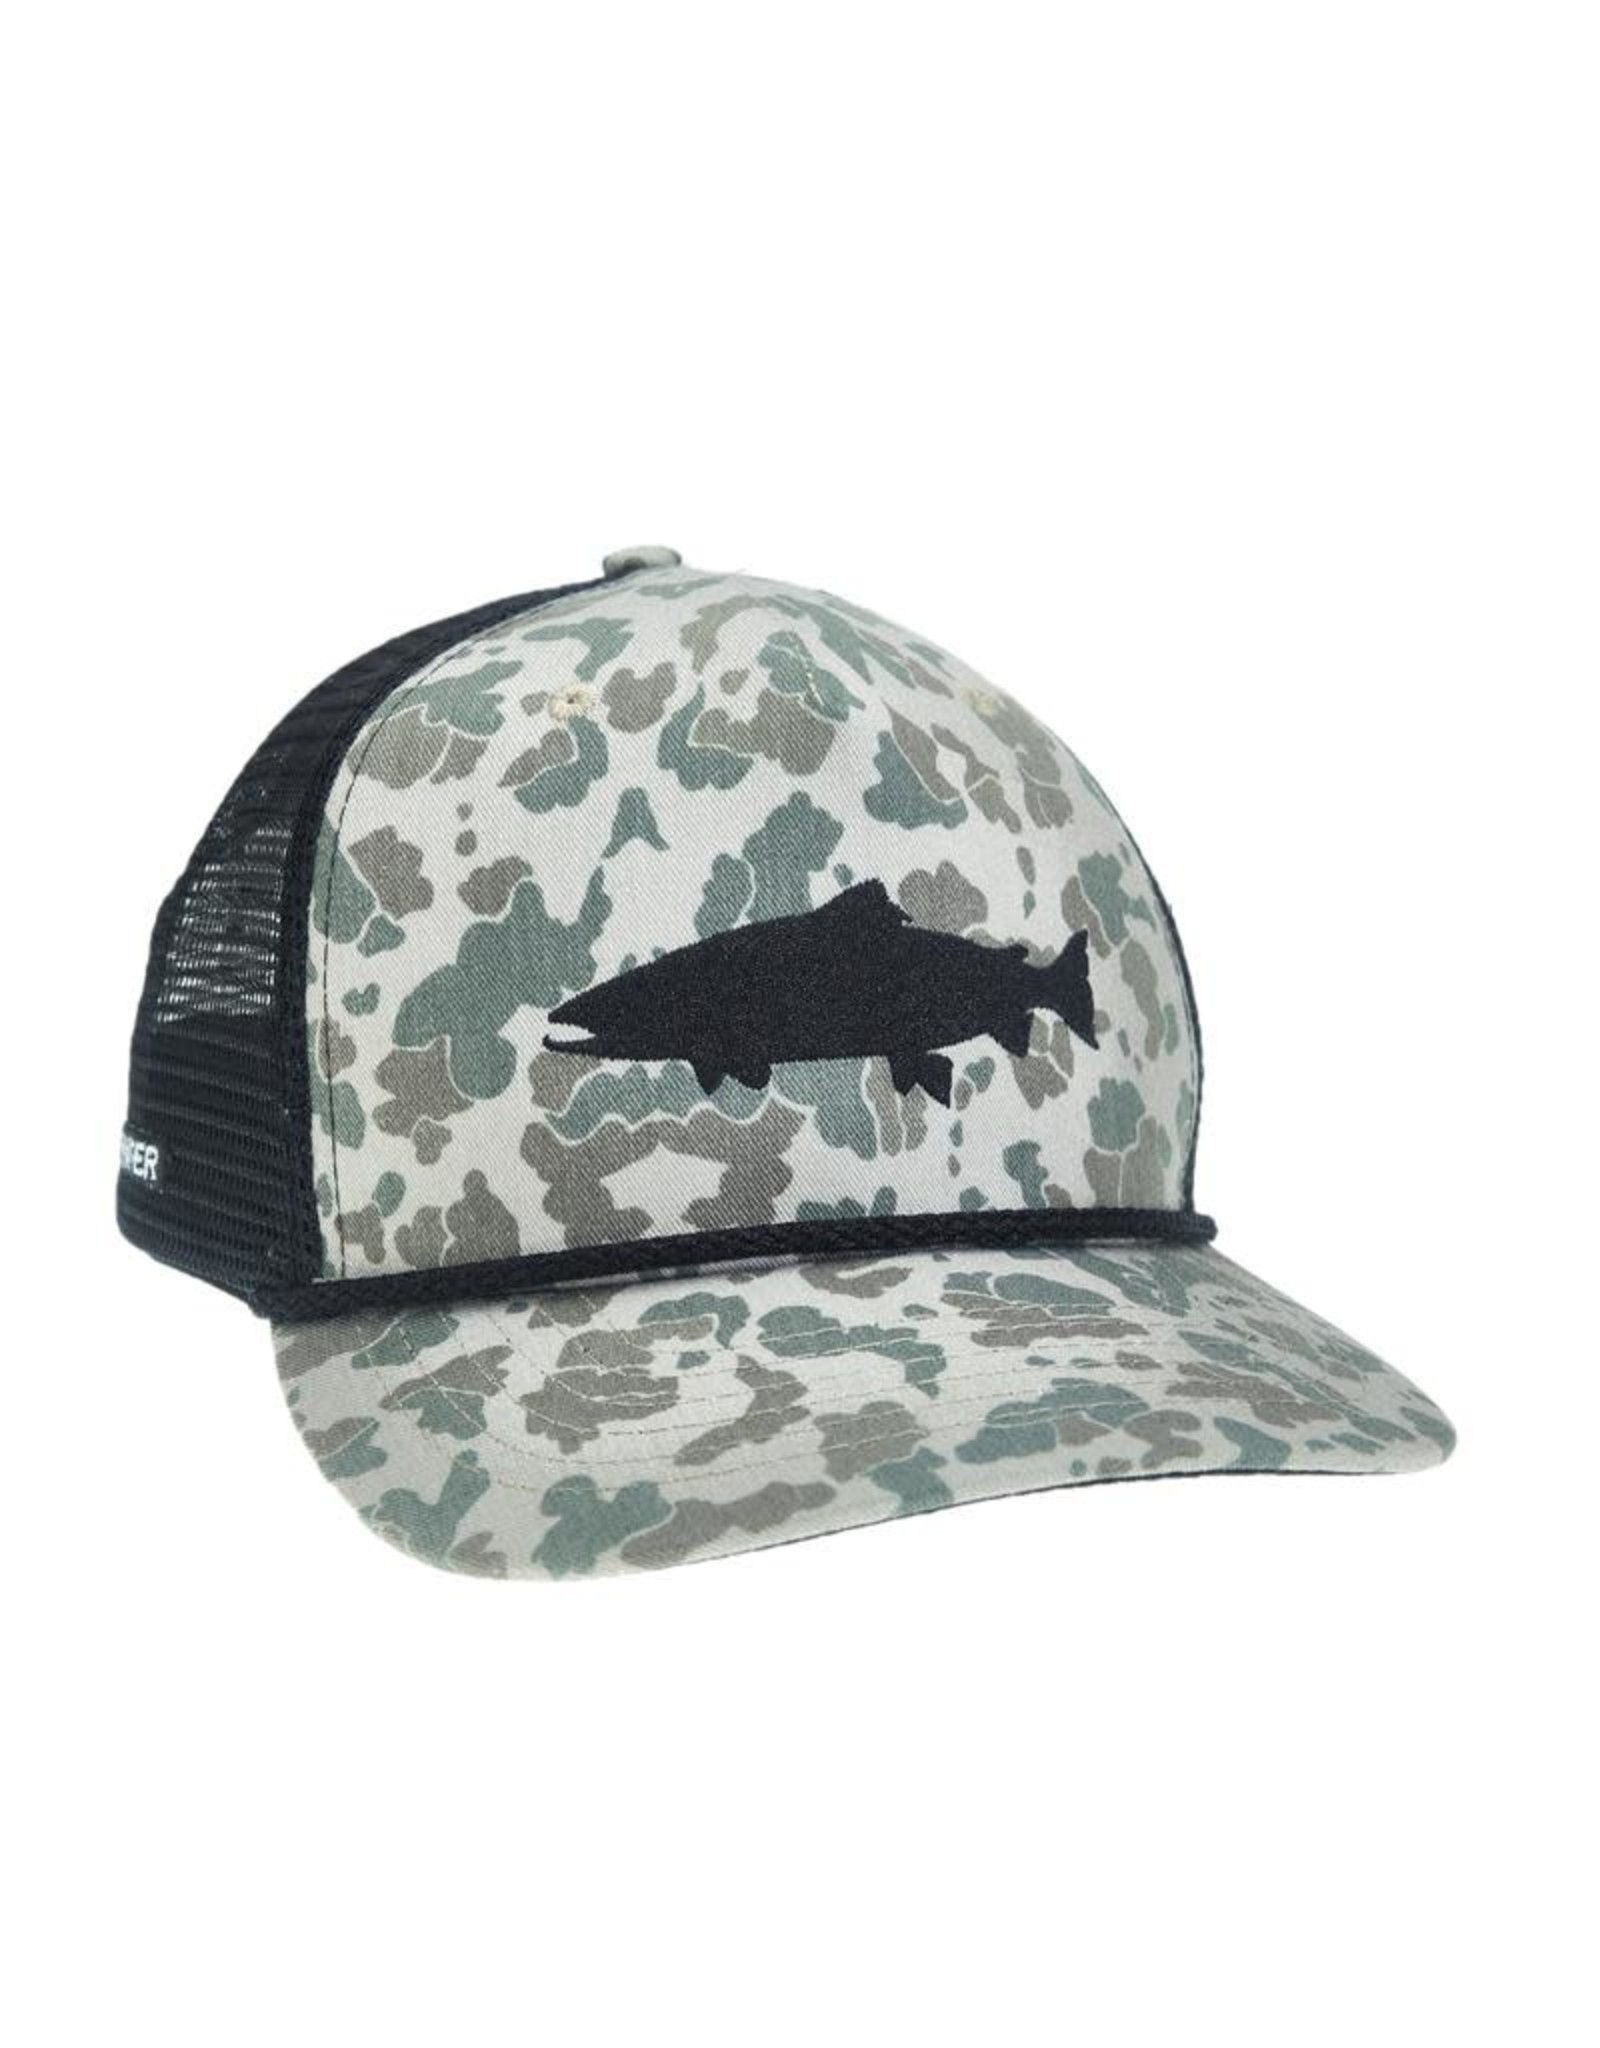 Rep Your Water RepYourWater Camo Trout Retro Hat 5 Panel